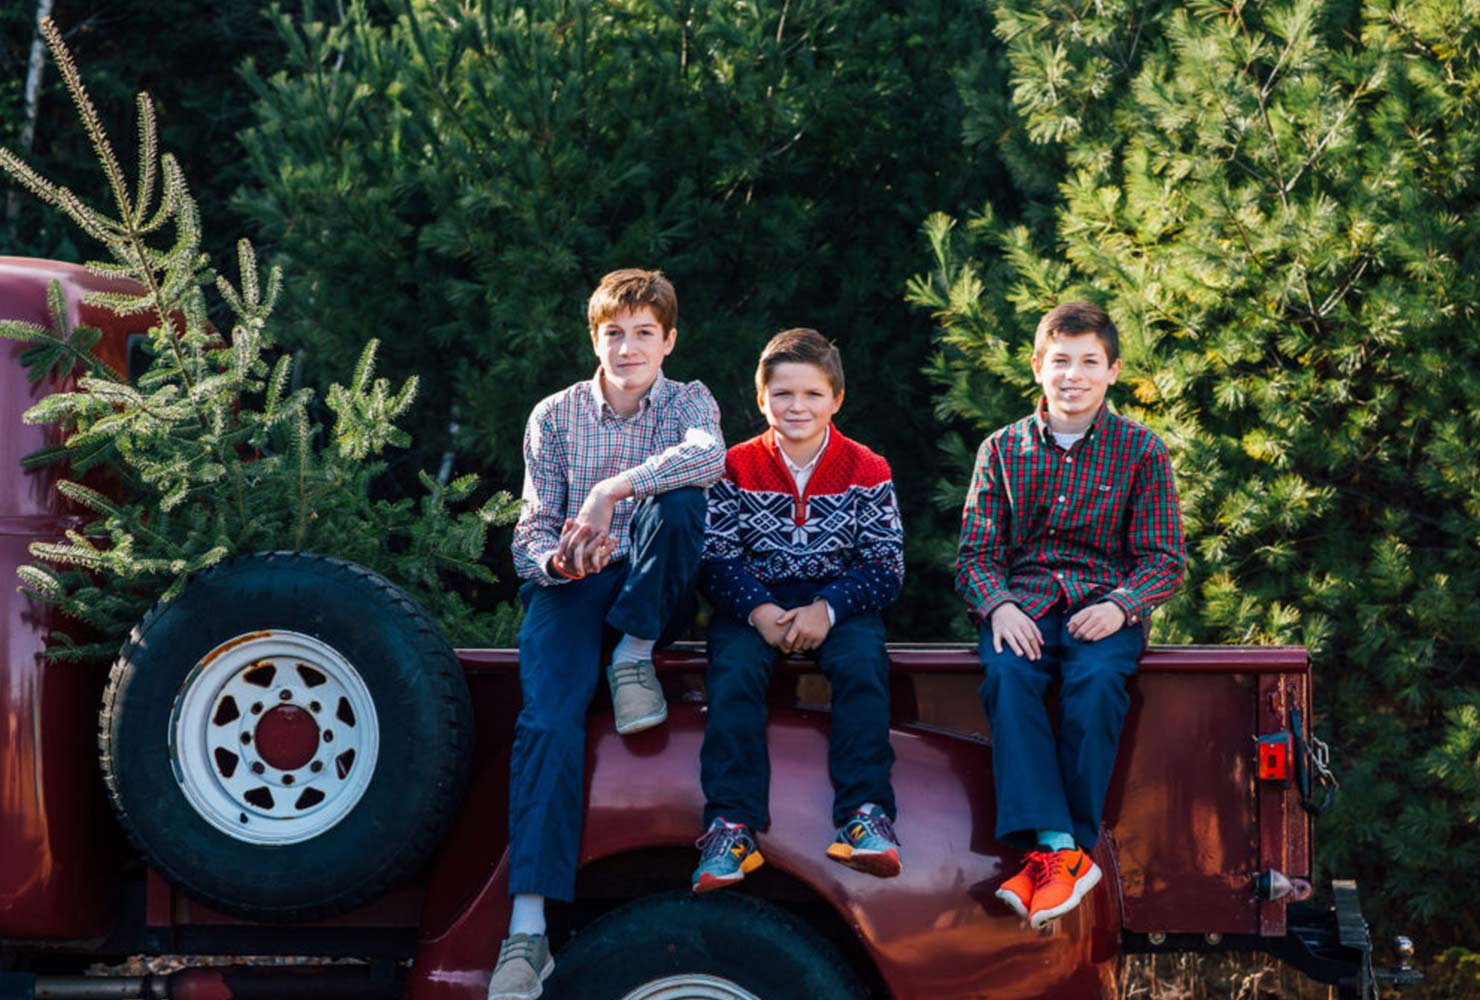 sibling photo ideas brothers truck bed